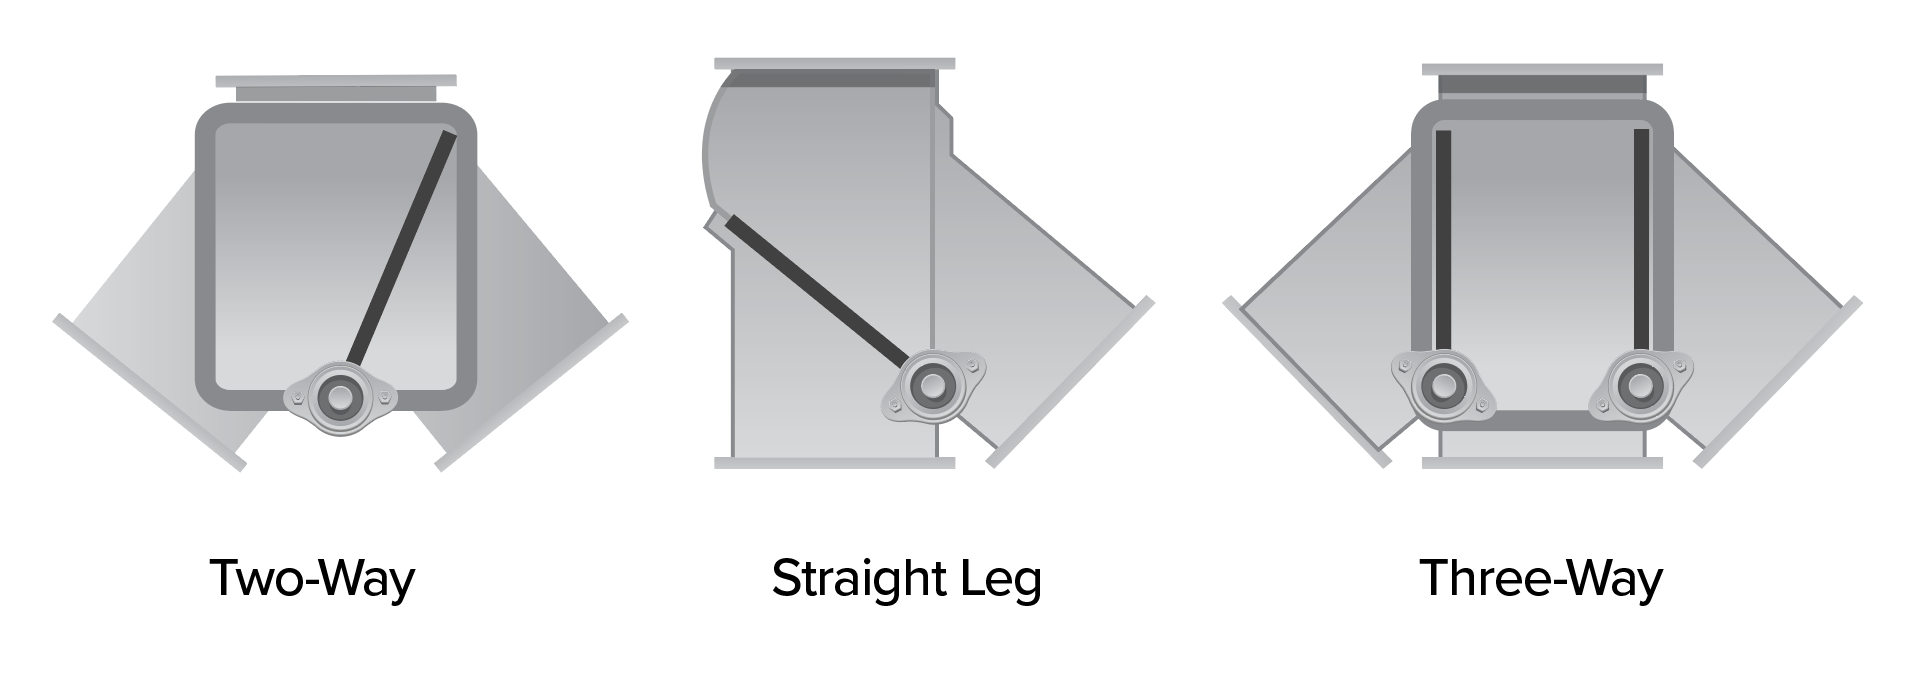 Options for the Seal Tite Diverter. 1. Two-way, 2. Straight Leg, 3. Three-way.